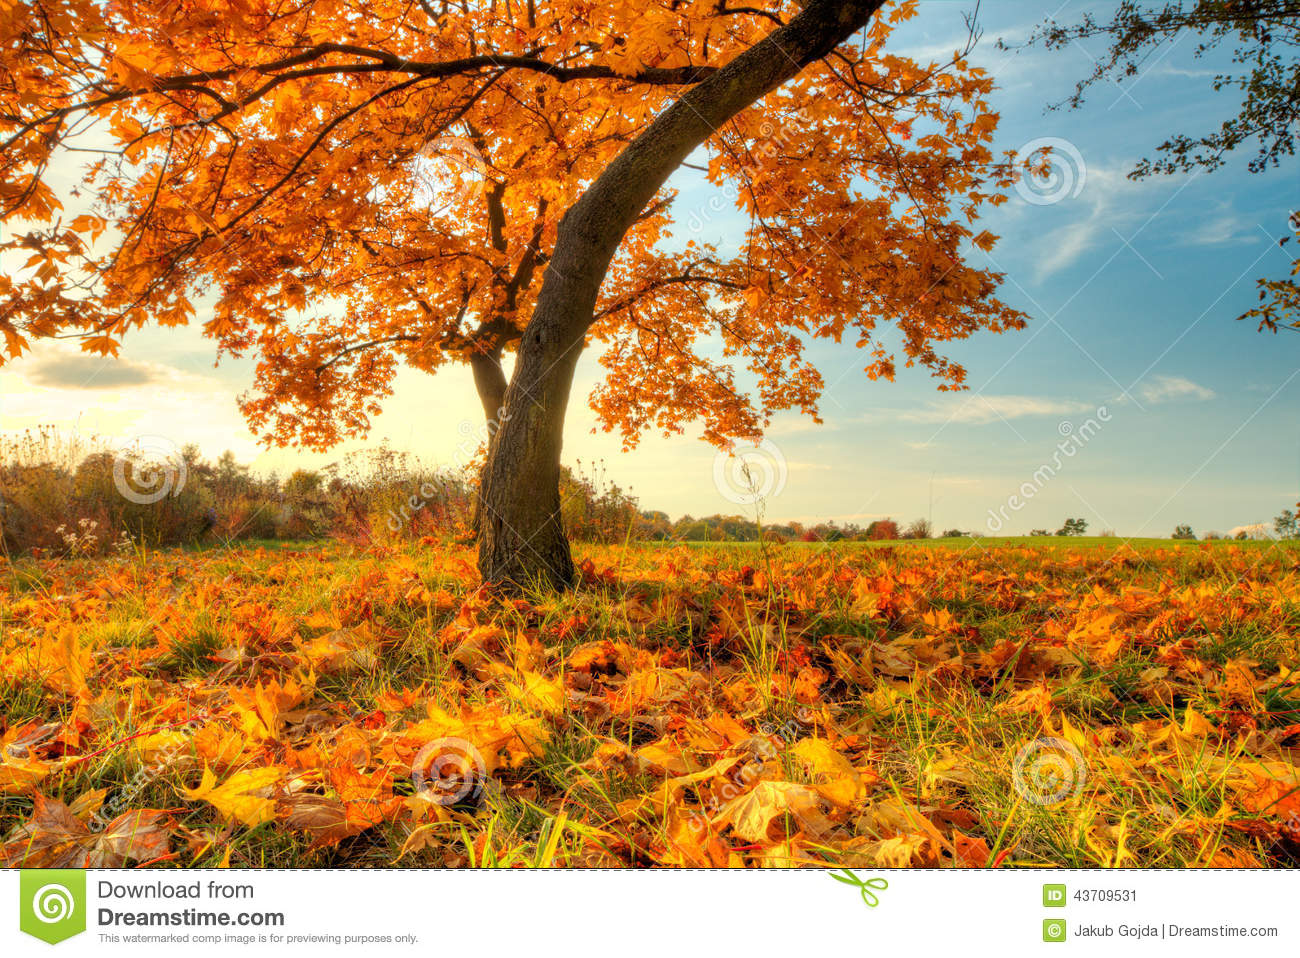 Beautiful Autumn Tree With Fallen Dry Leaves Stock Image ...